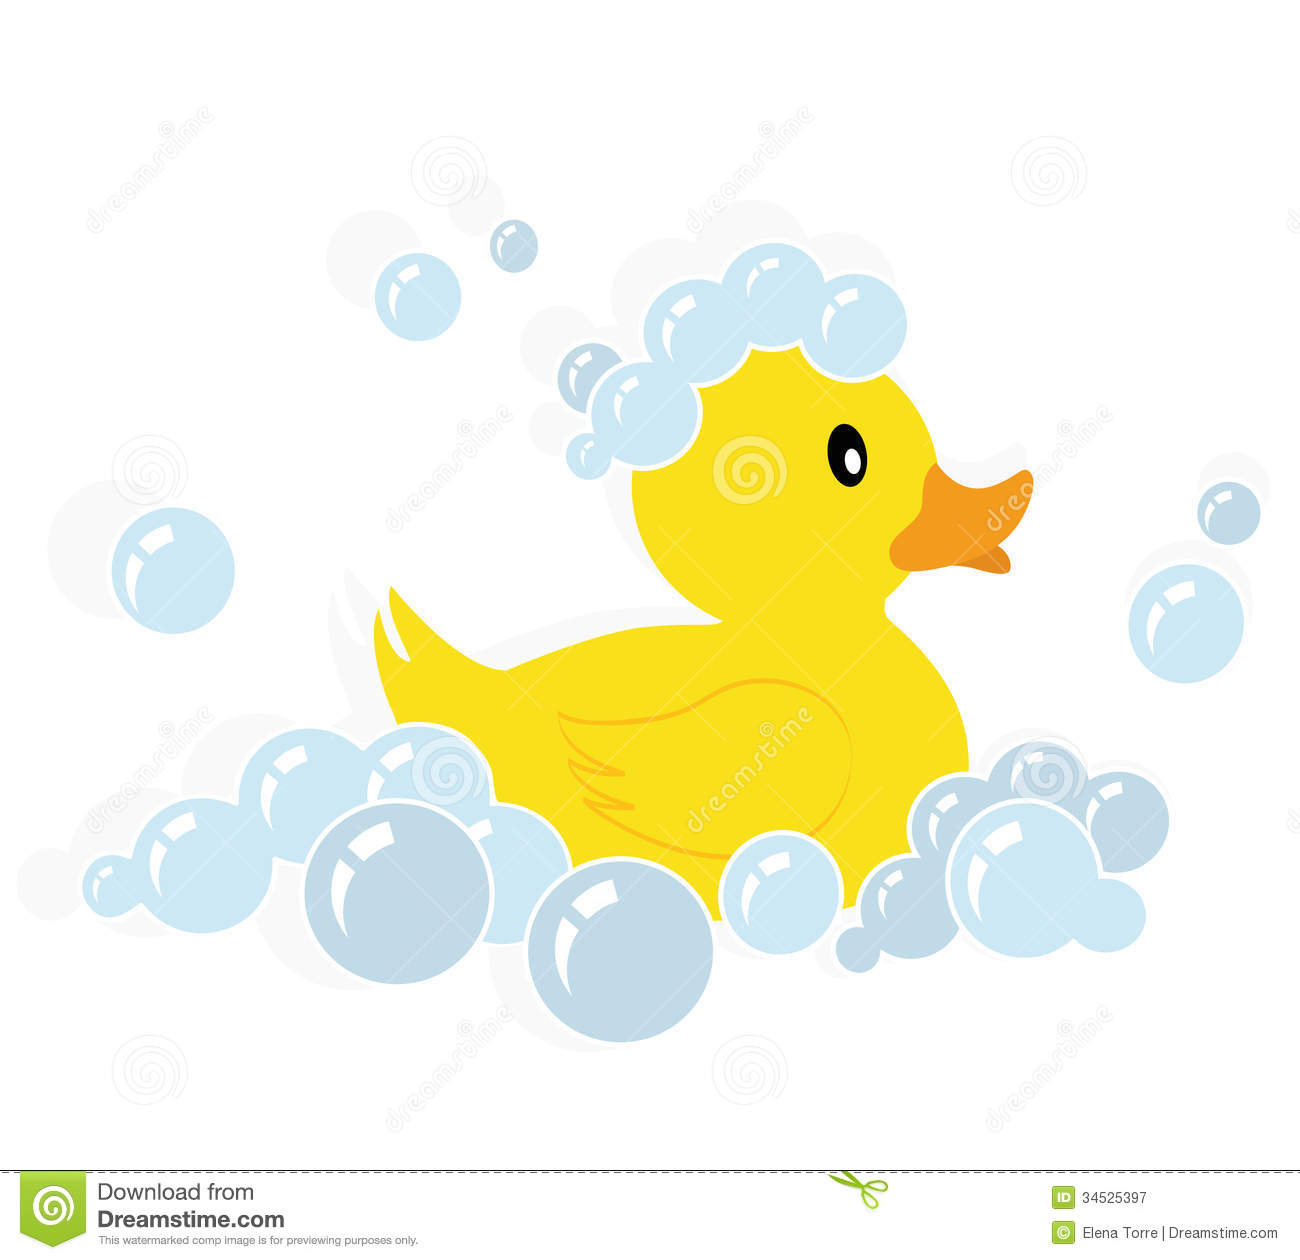 Girl rubber duckie clipart.